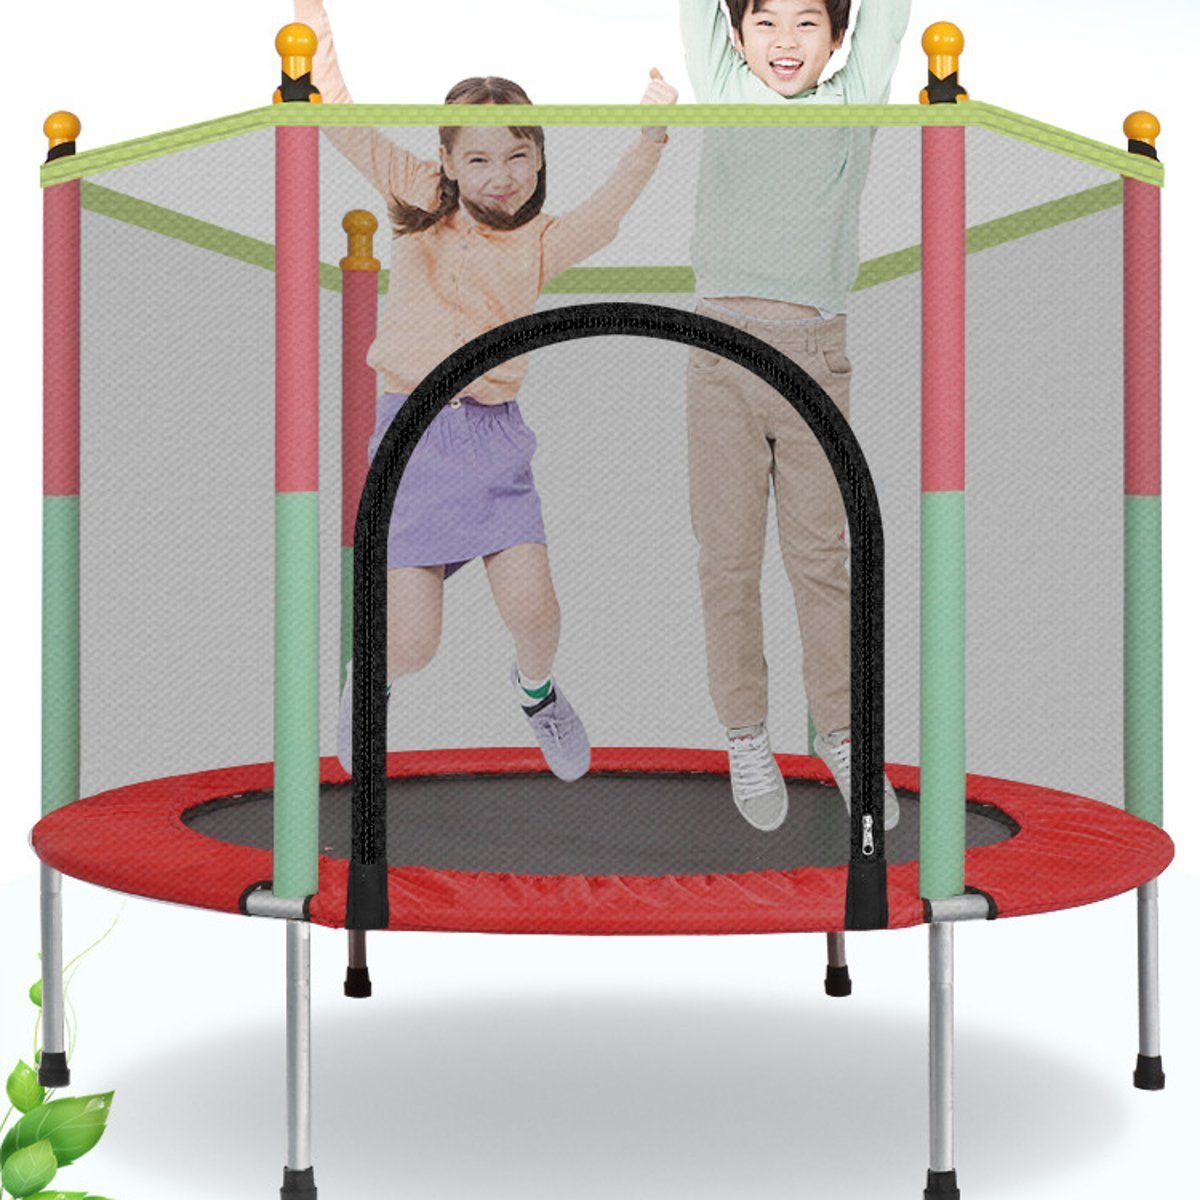 Small Indoor Jump Trampoline With Enclosure For Kids - Shopptique